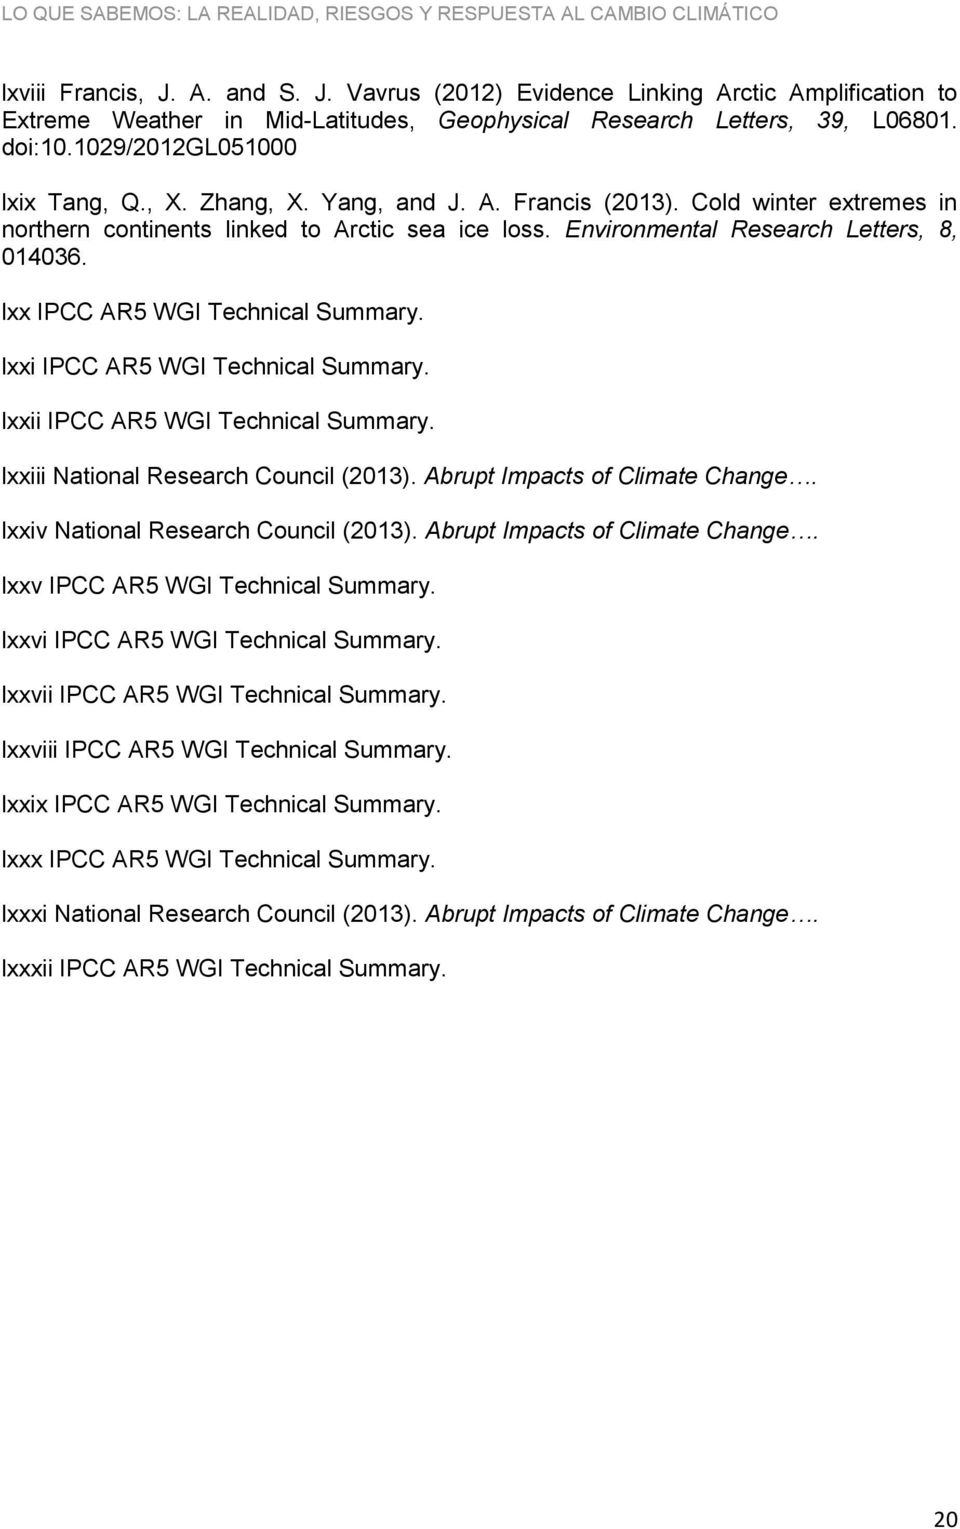 lxx IPCC AR5 WGI Technical Summary. lxxi IPCC AR5 WGI Technical Summary. lxxii IPCC AR5 WGI Technical Summary. lxxiii National Research Council (2013). Abrupt Impacts of Climate Change.